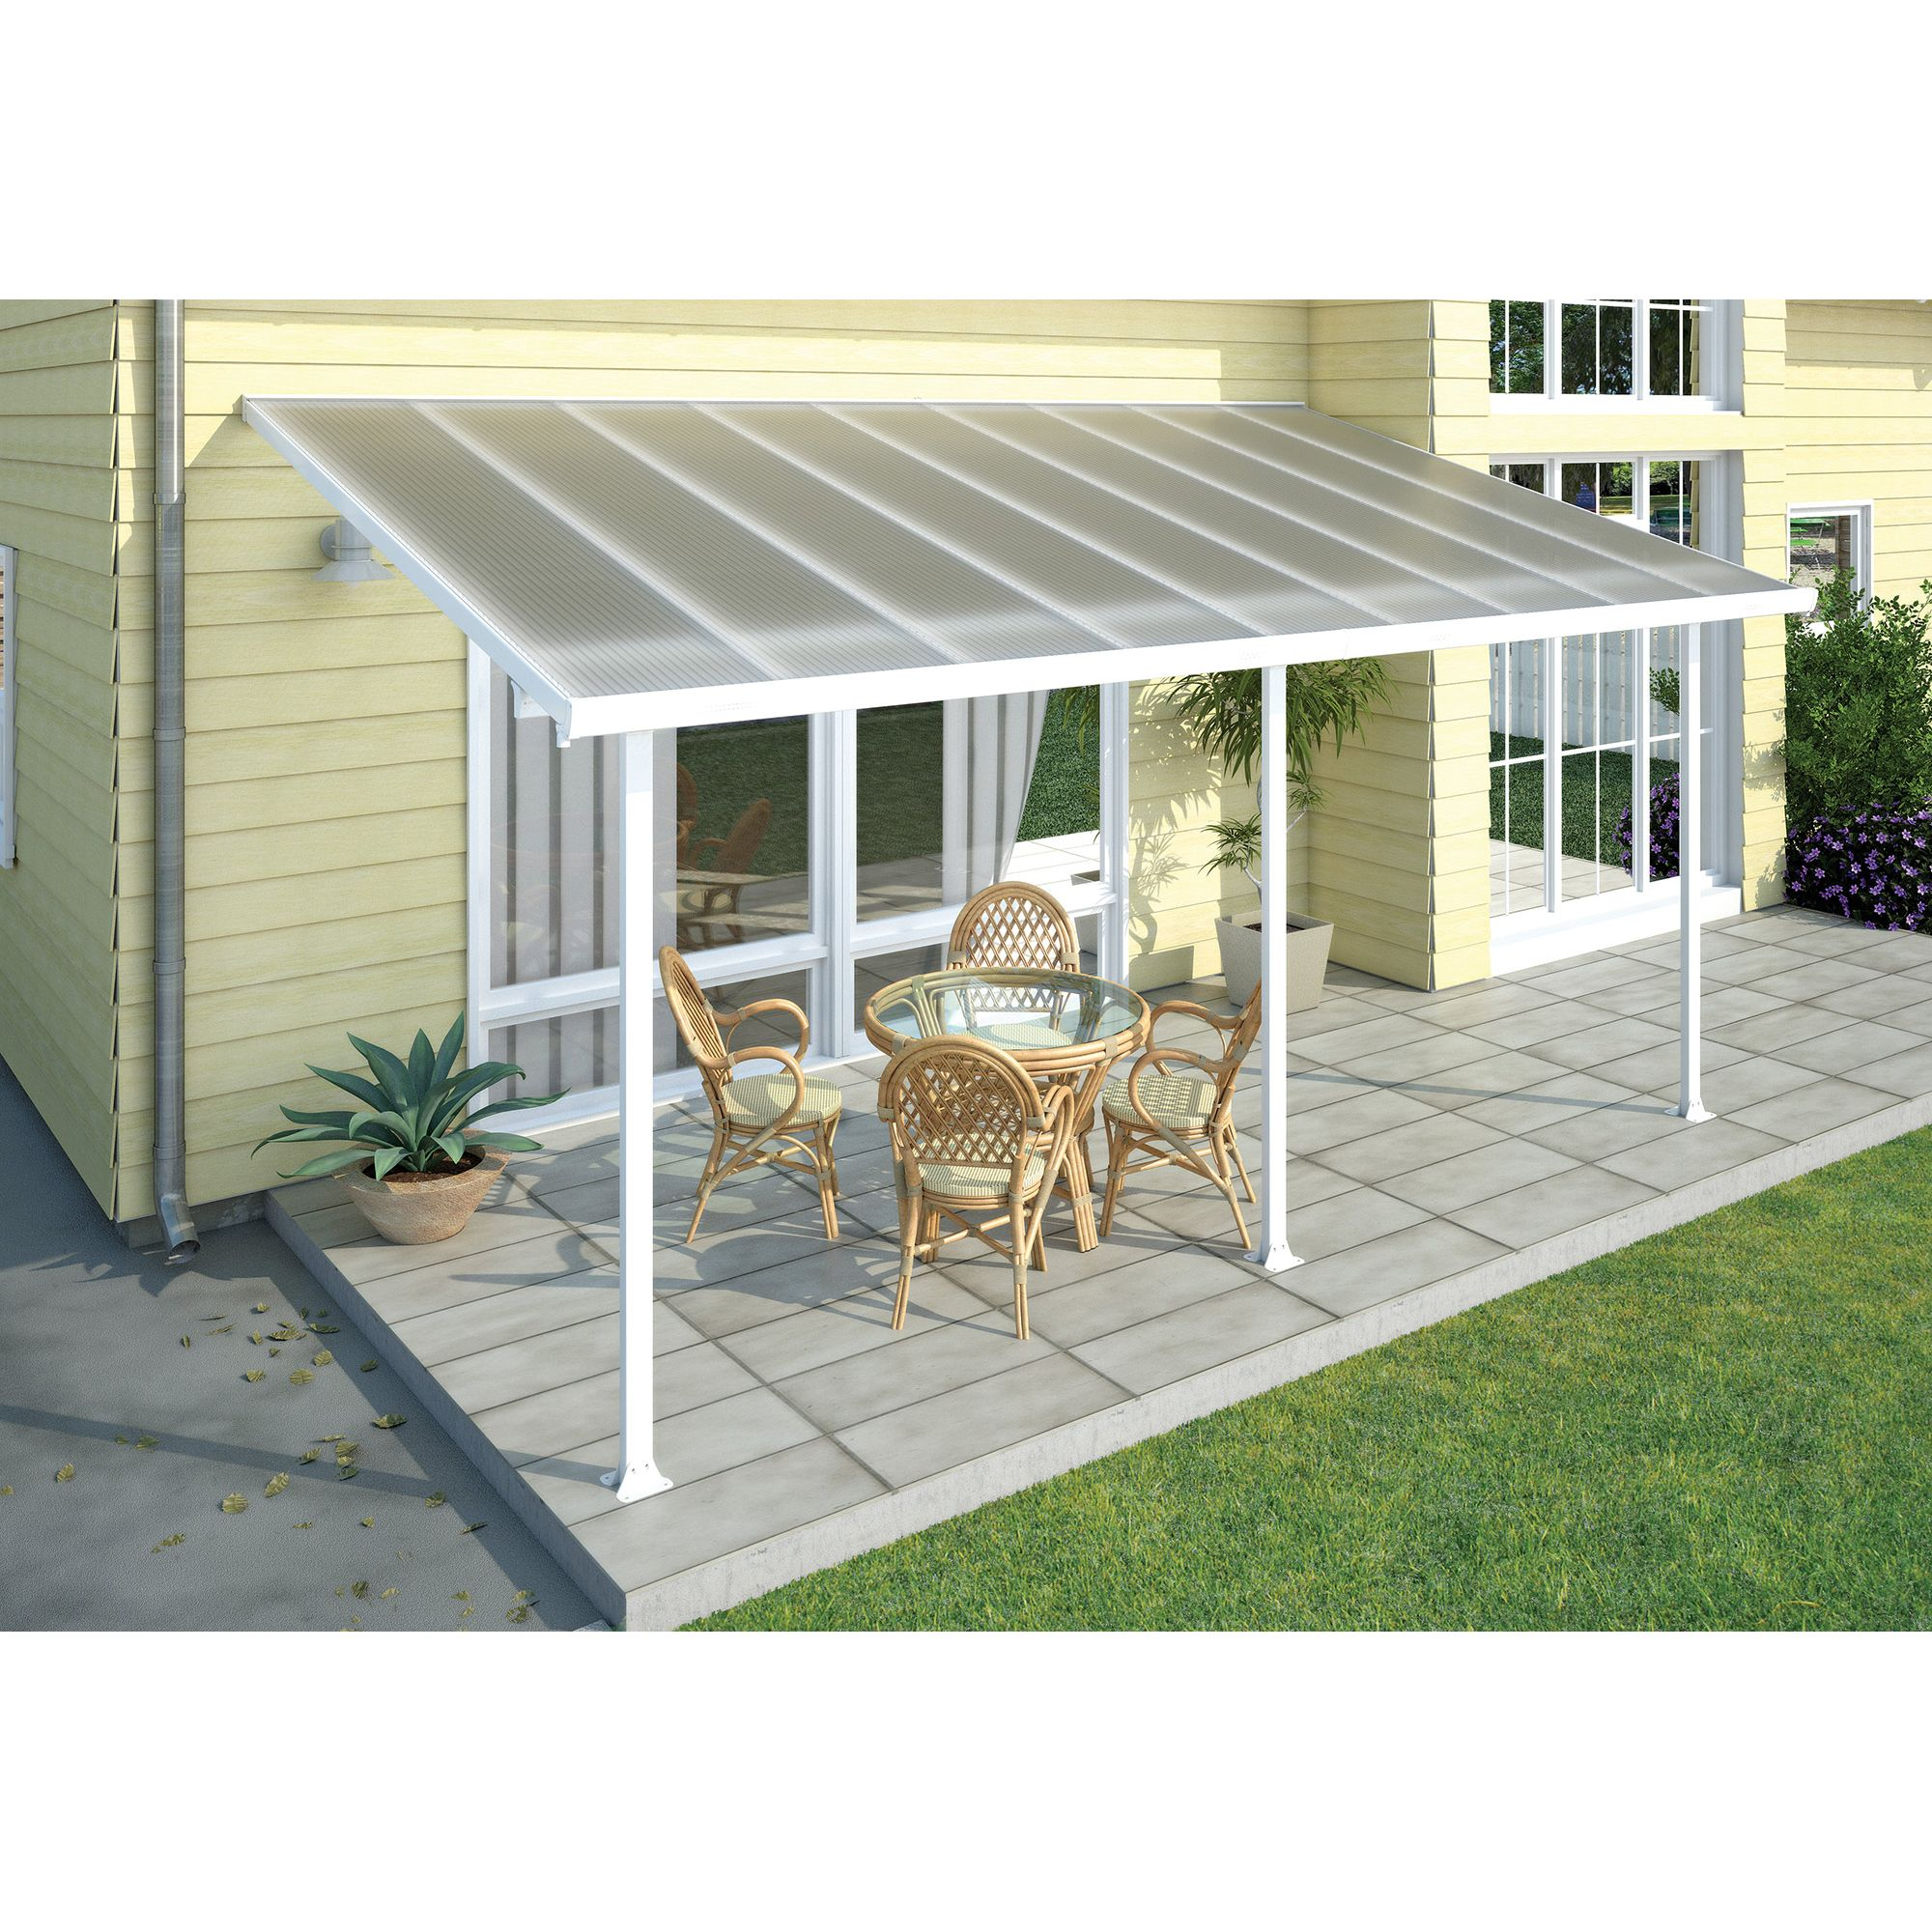 FERIA LEAN TO CARPORT AND PATIO COVER 3X10.92 WHITE at Tescos Direct